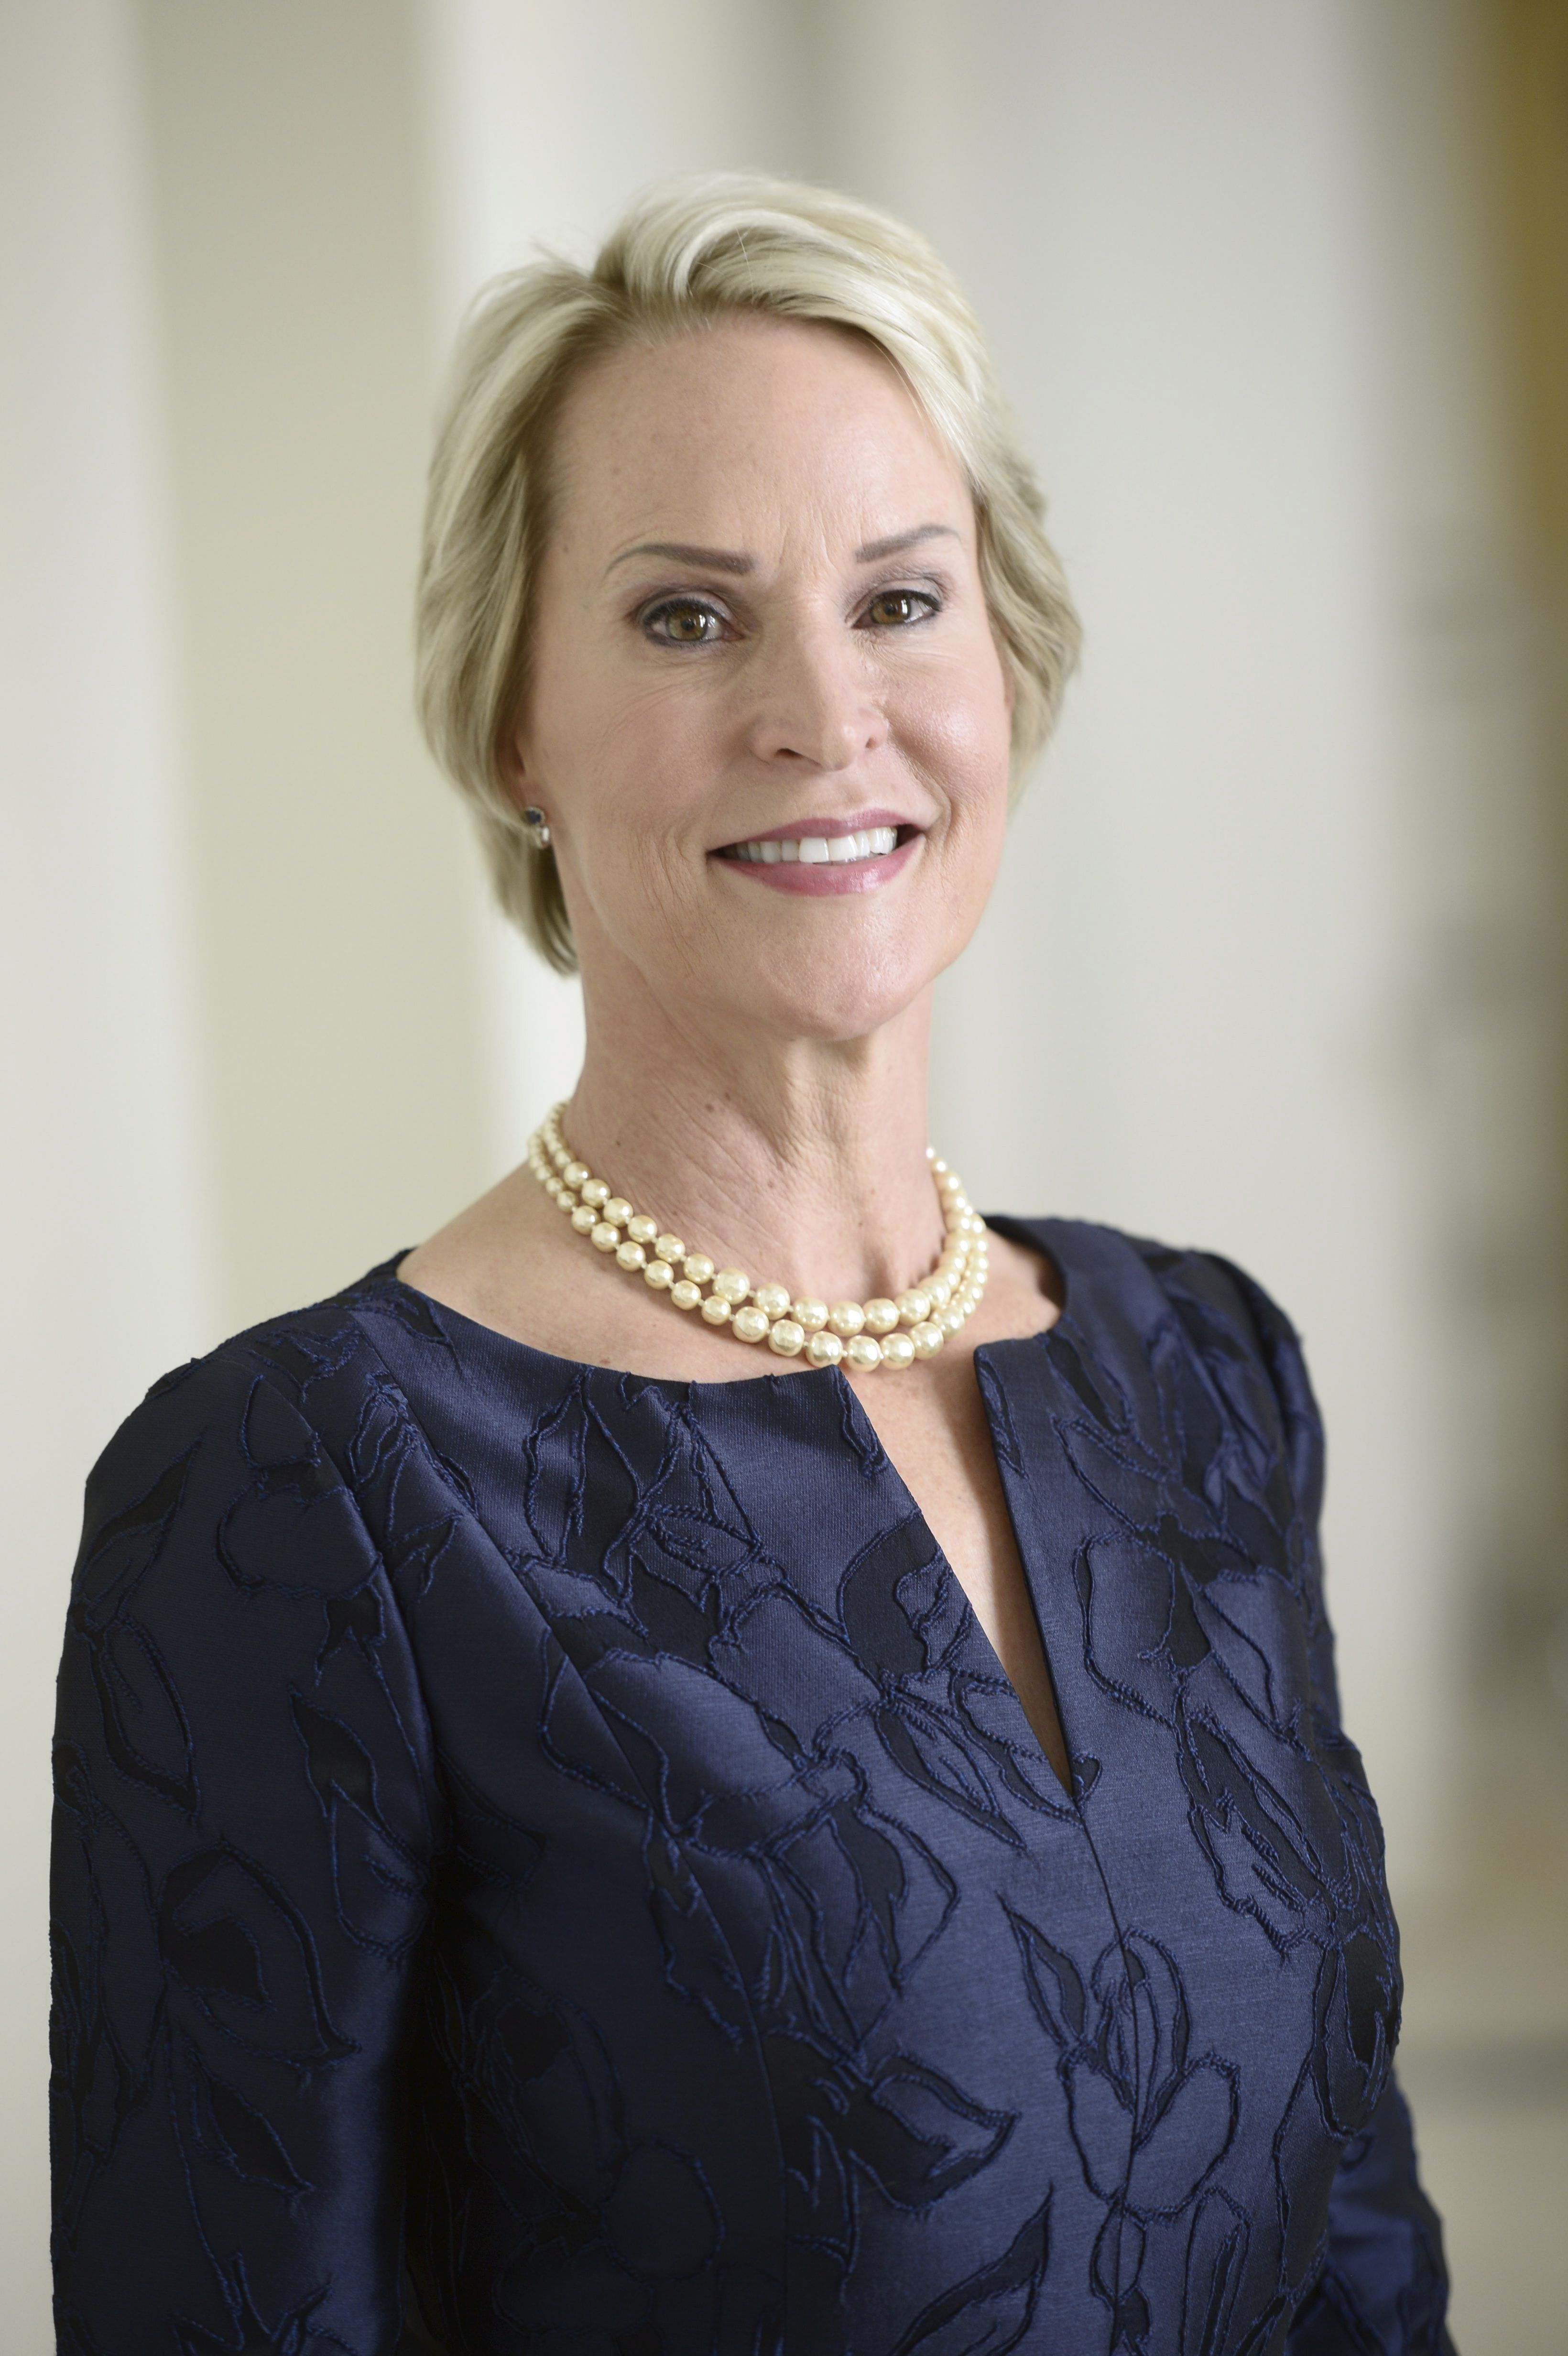 US biochemical engineer Frances Arnold poses after she received the Millennium Technology Prize 2016 in Helsinki, Finland, on May 24, 2016. Arnold won the million-euro technology prize for her work on 'directed evolution'. / AFP / Lehtikuva / Heikki Saukkomaa / Finland OUT        (Photo credit should read HEIKKI SAUKKOMAA/AFP/Getty Images)